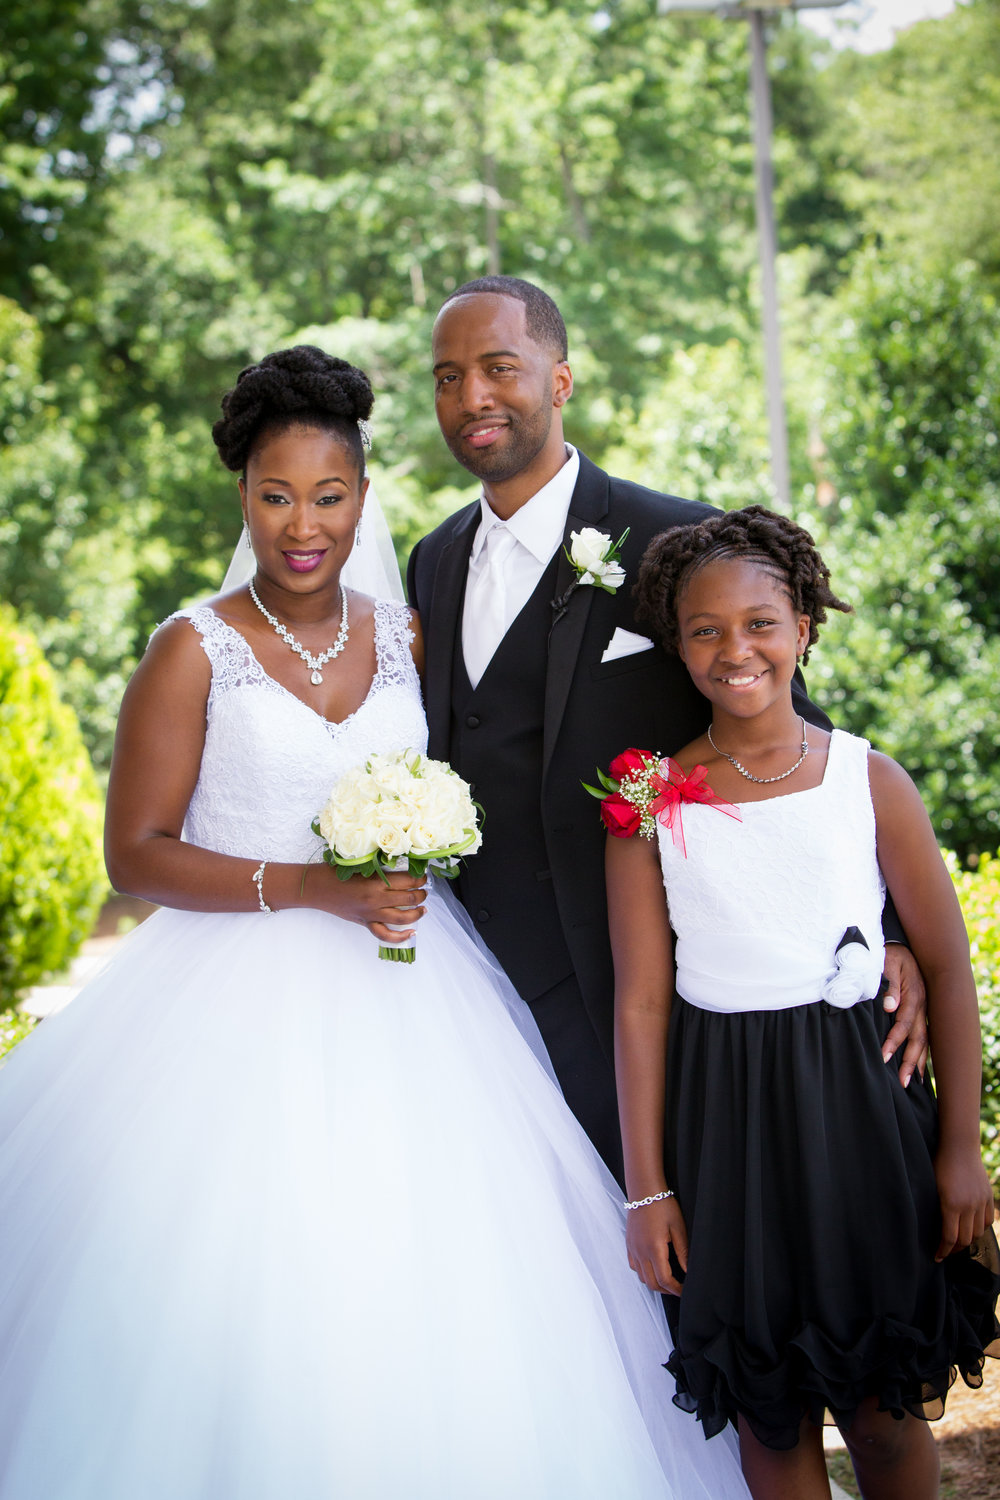 Happy family from Georgia ready to welcome a child into their family through adoption